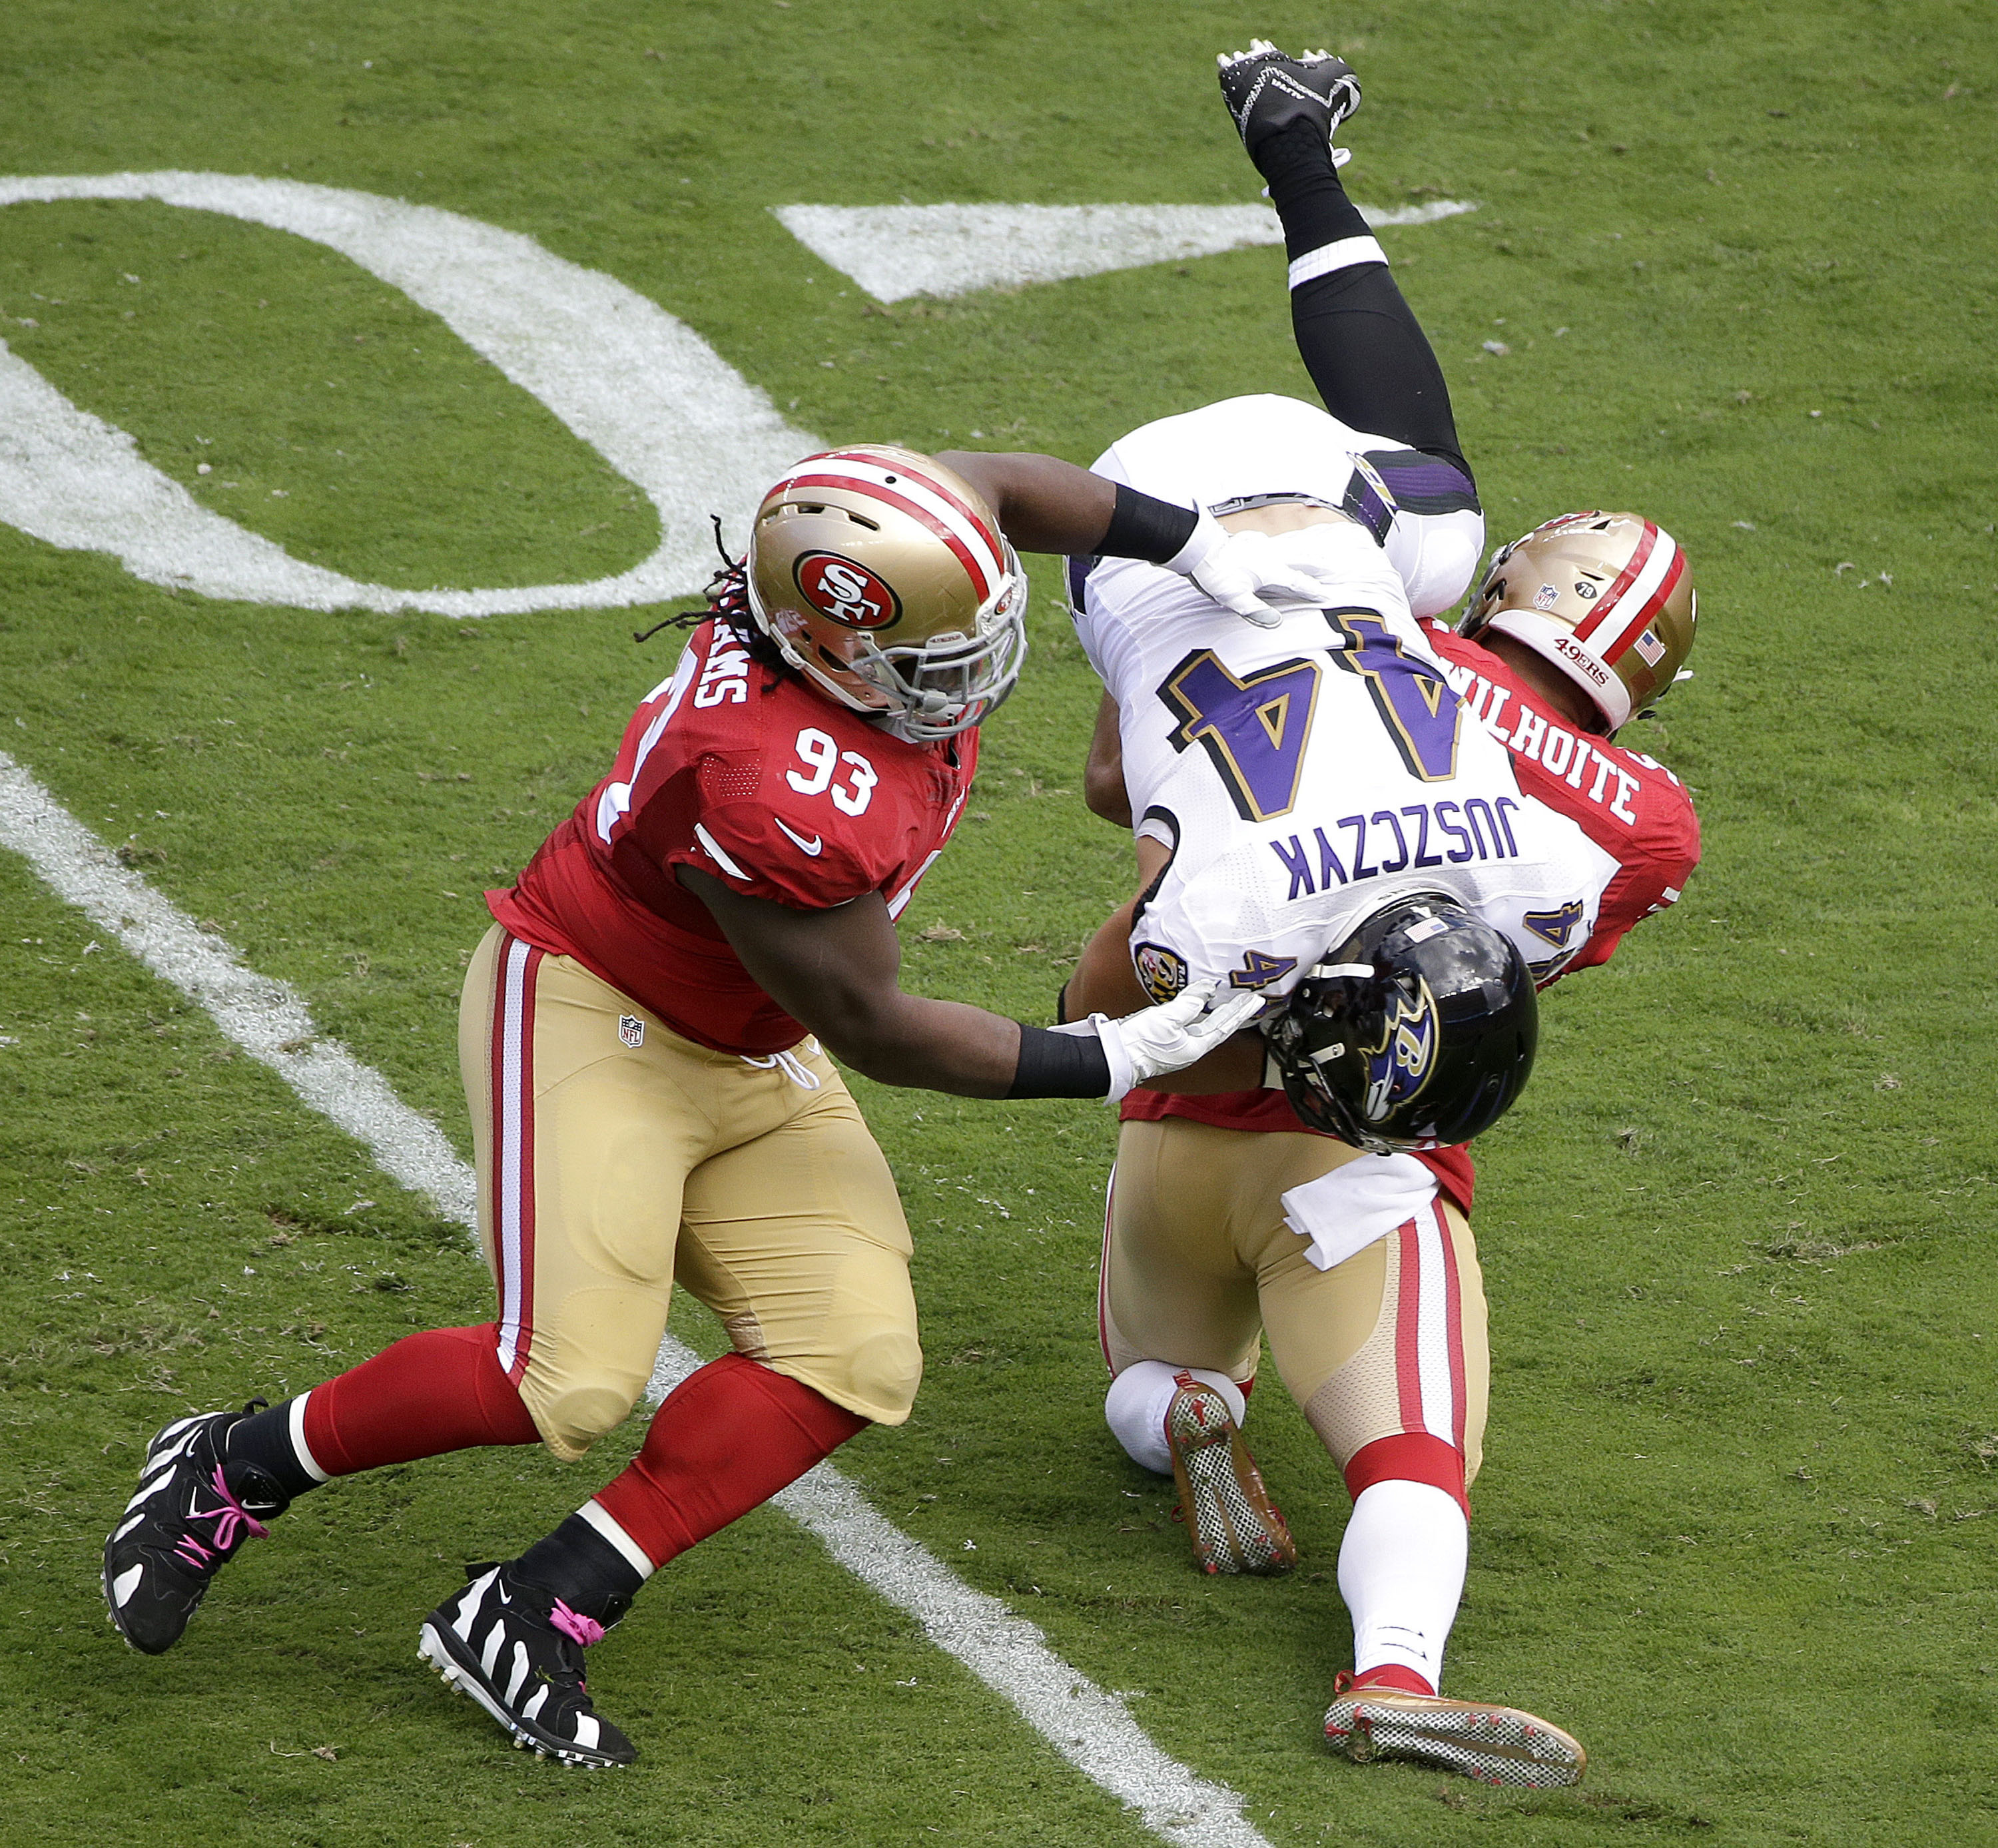 FILE - In this Sunday, Oct. 18, 2015 file photo, Baltimore Ravens fullback Kyle Juszczyk (44) is tackled by San Francisco 49ers nose tackle Ian Williams (93) during the first half of an NFL football game in Santa Clara, Calif. Ian Williams passed NaVorro